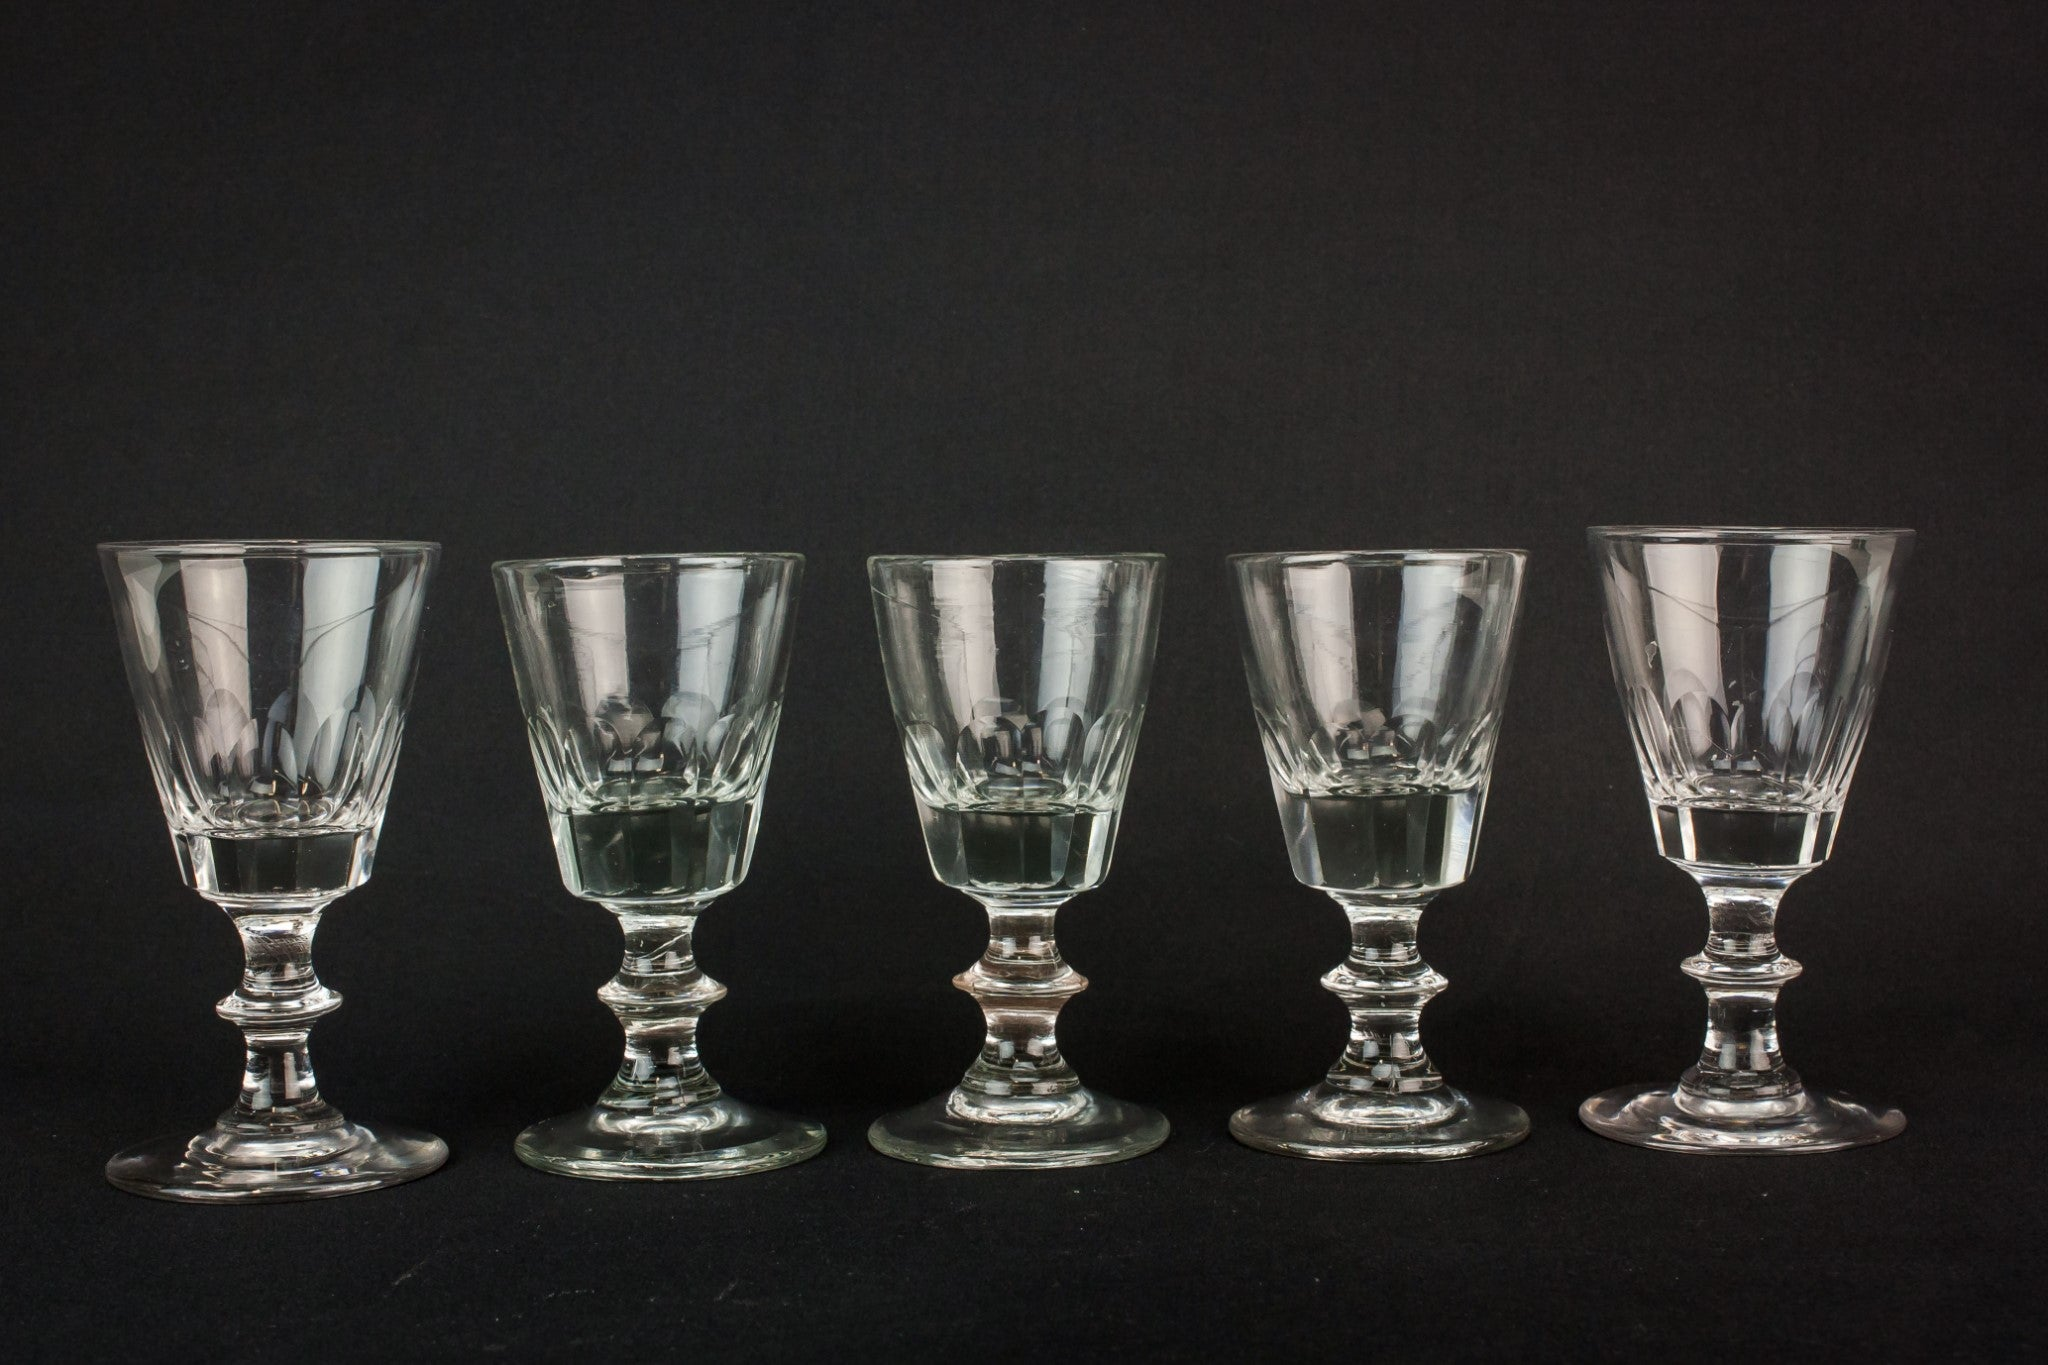 5 stem port glasses